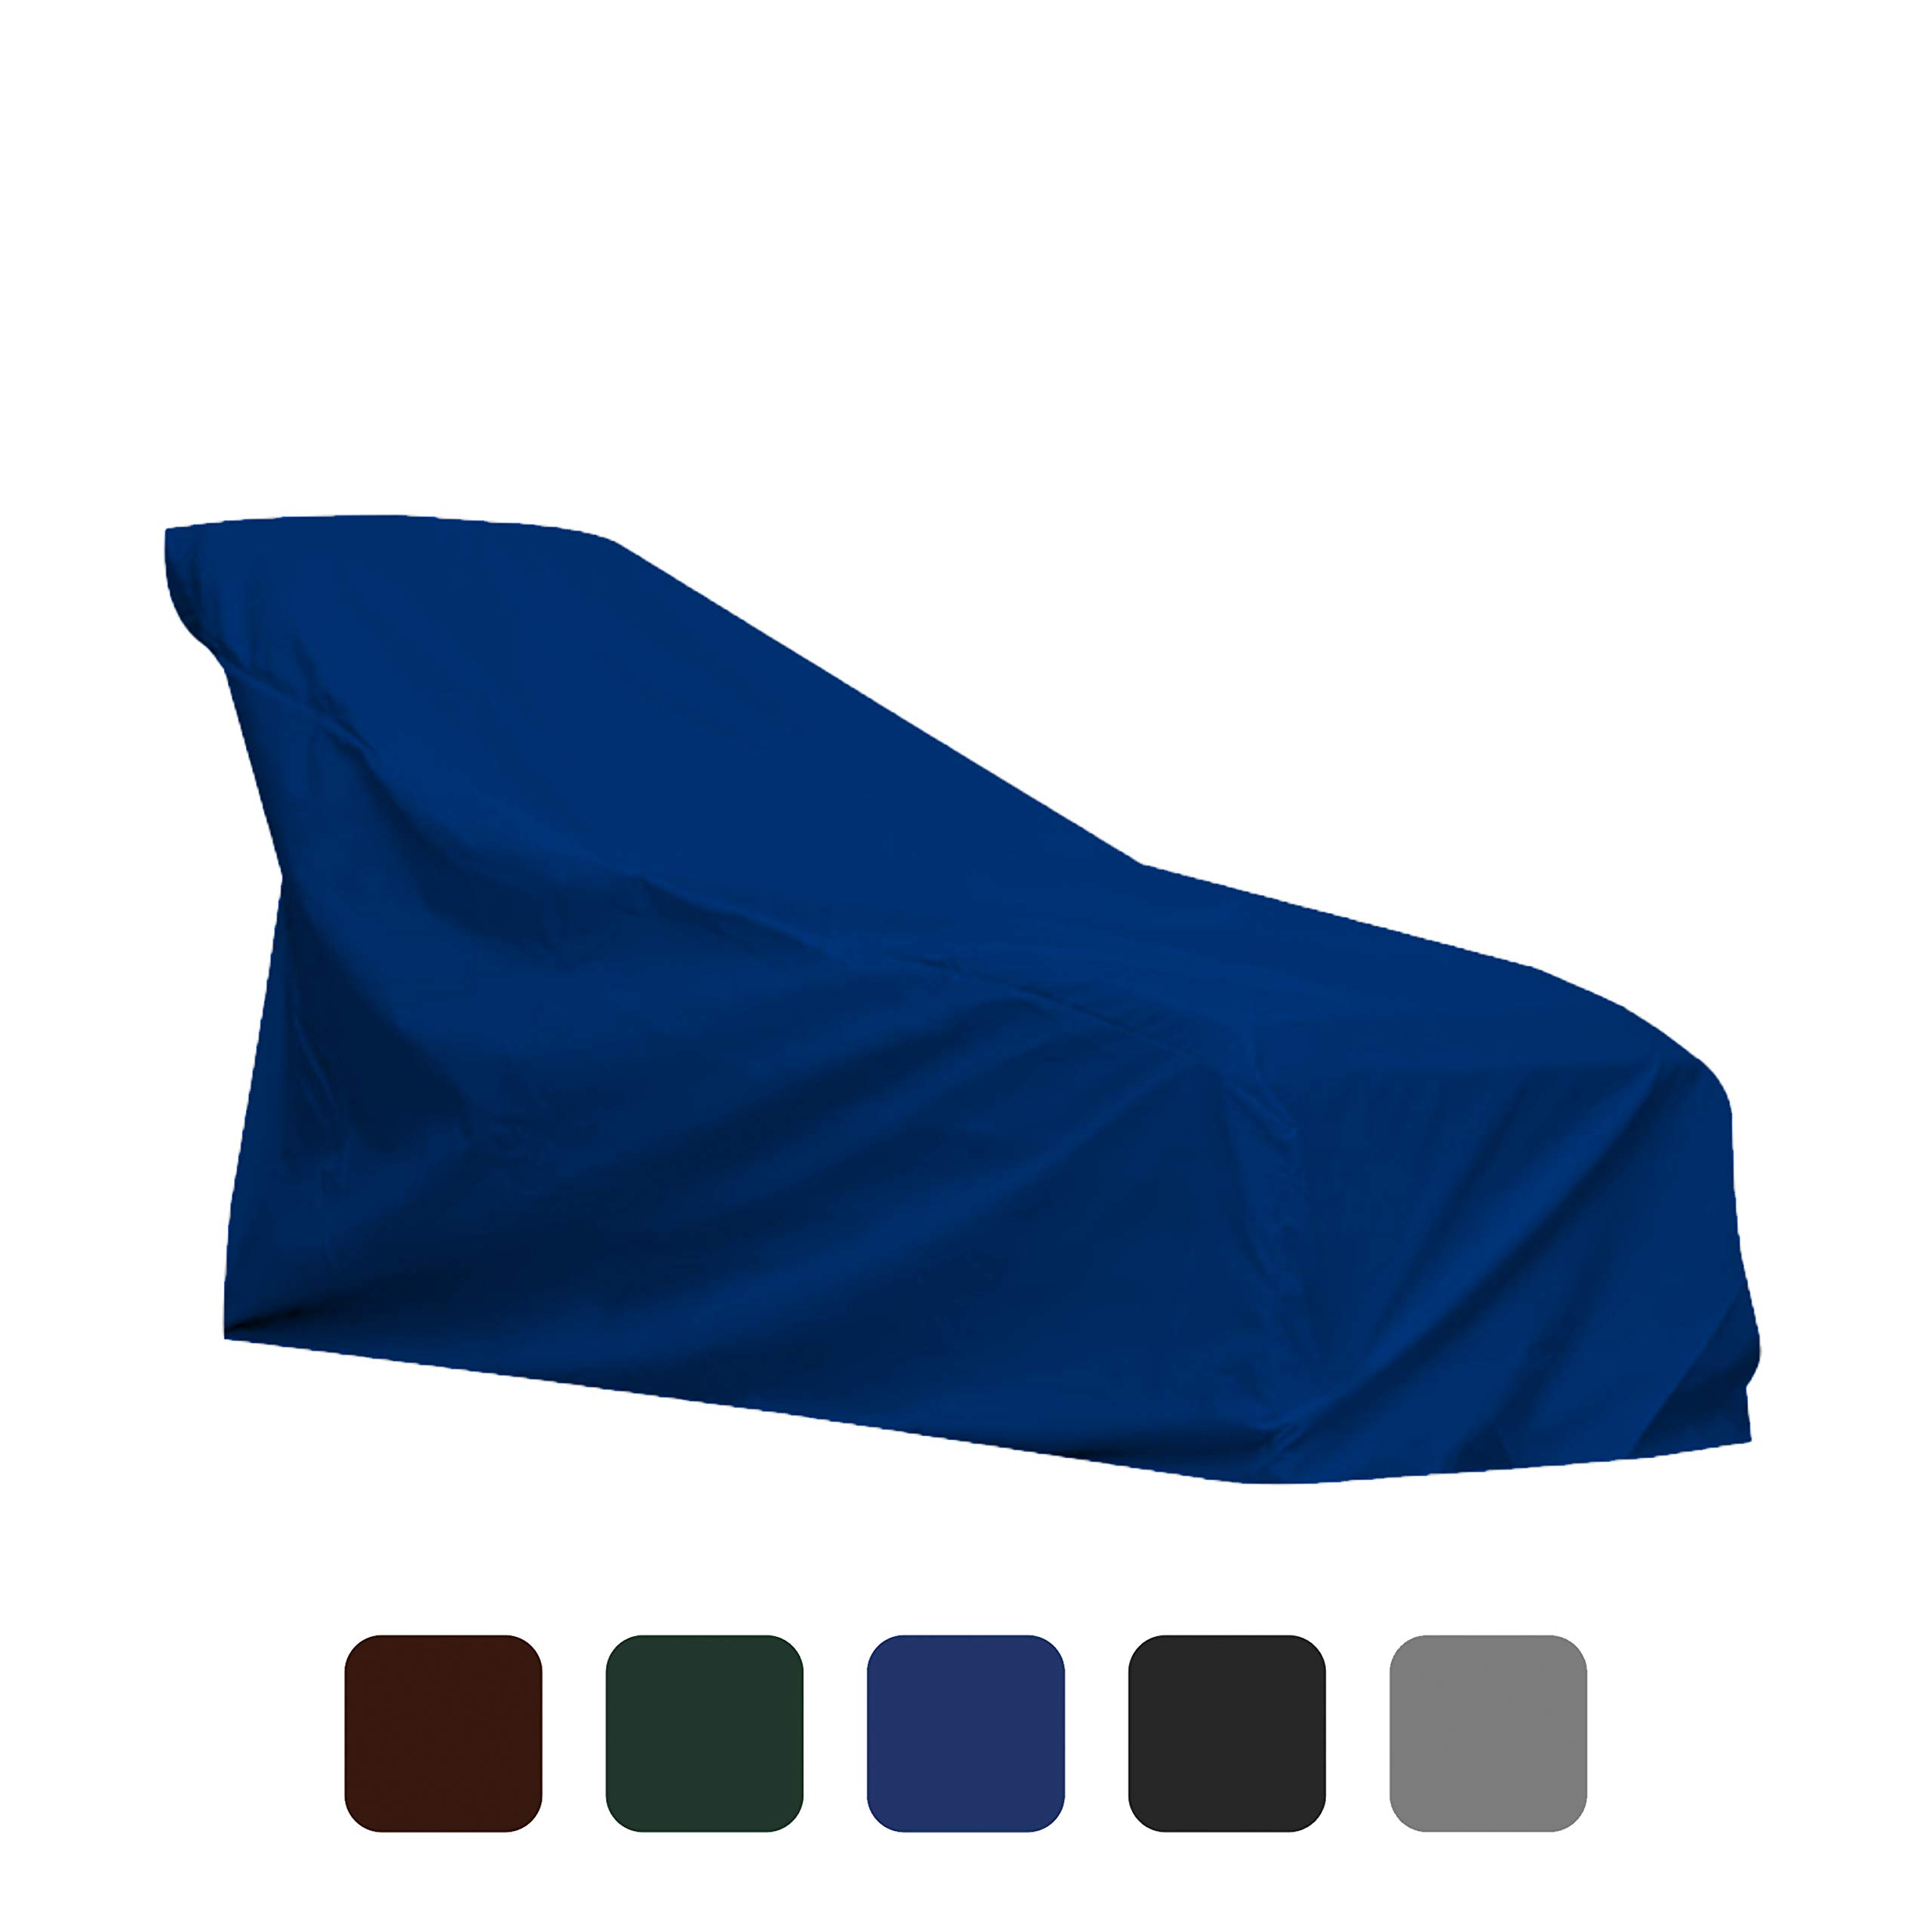 COVERS & ALL Chaise Lounge Cover 18 Oz Waterproof - 100% UV & Weather Resistant Outdoor Chaise Cover PVC Coated with Air Pockets and Drawstring for Snug Fit (80W x 34D x 32H, Blue)